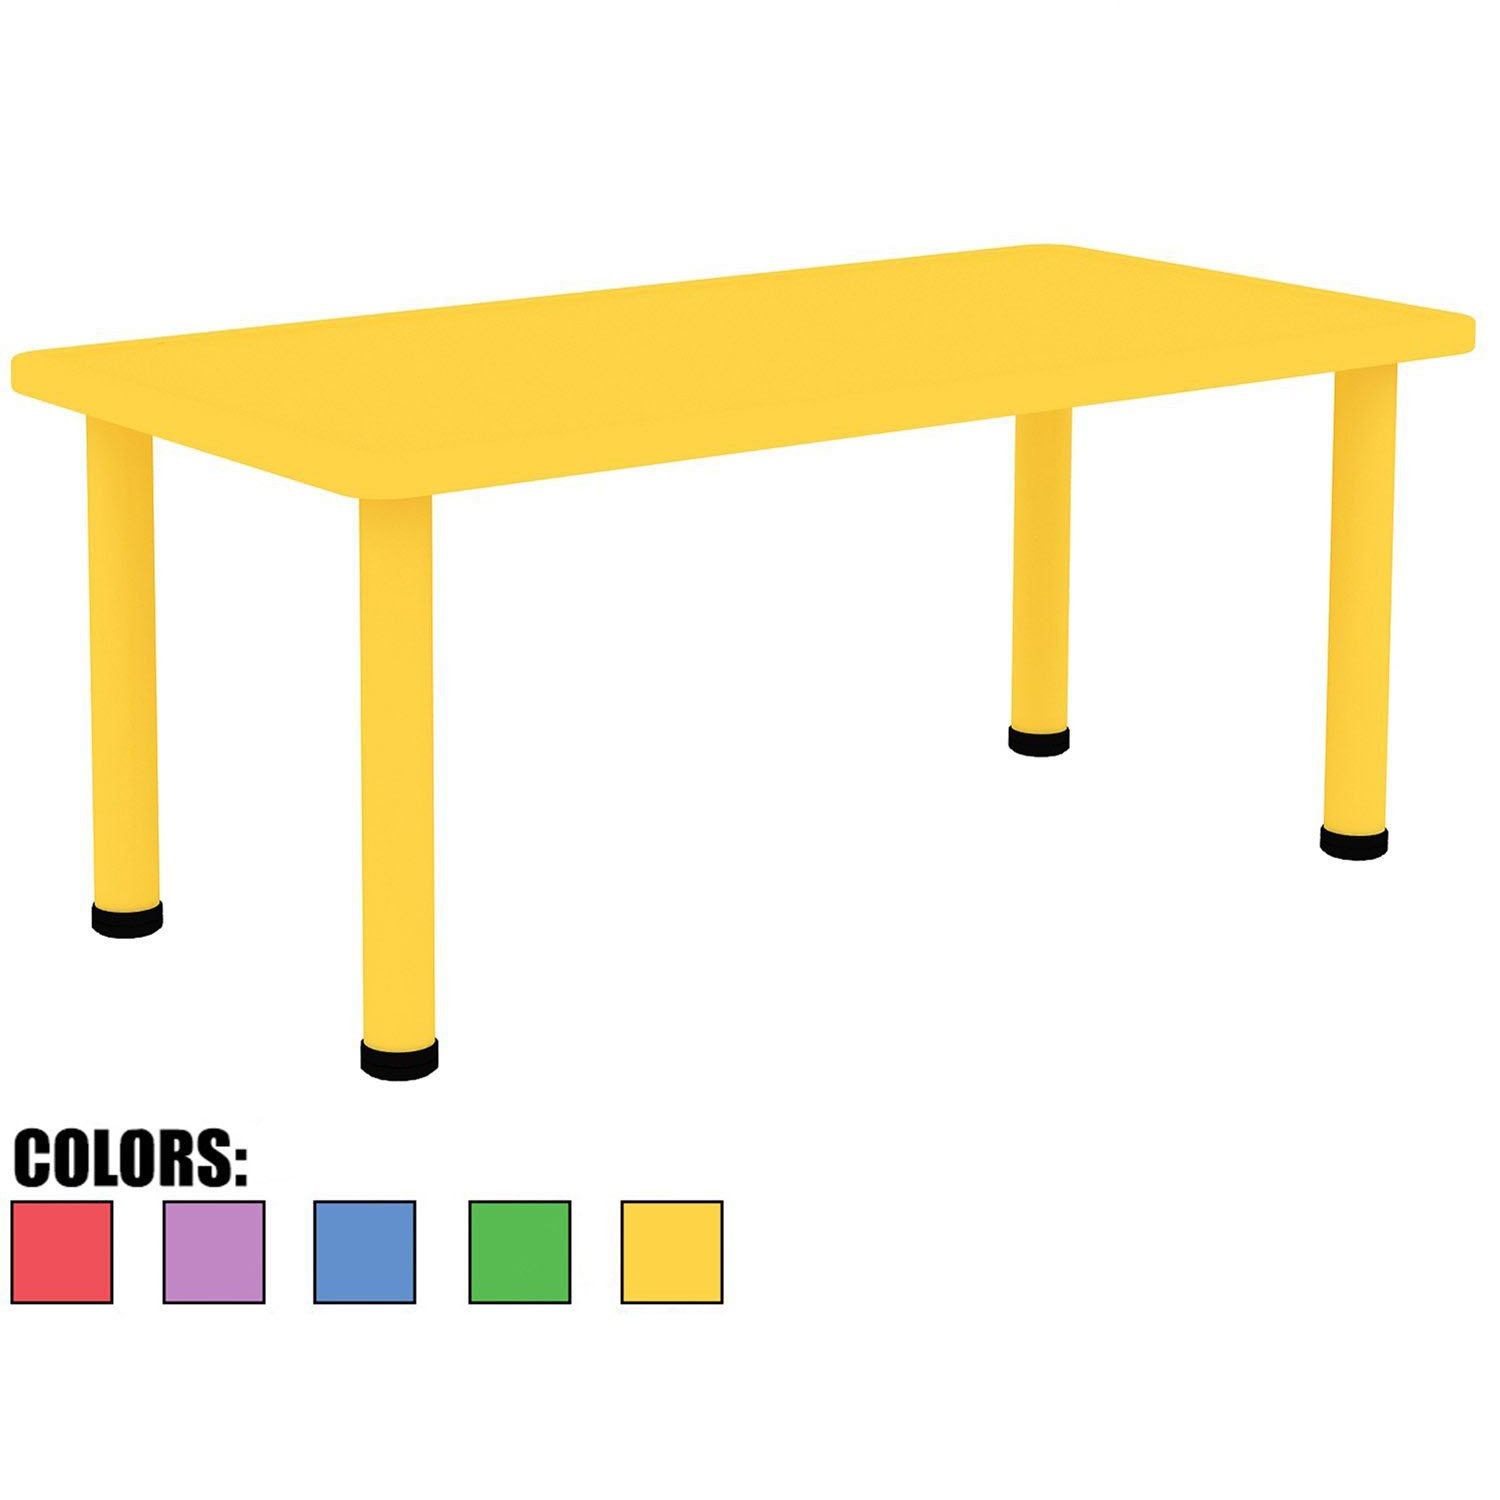 "2xhome – Yellow – Kids Table – Height Adjustable 18.25 inches to 19.25 inches - Rectangle Plastic Activity table With Metal legs for Toddler Child Furniture Preschool School Learn Play 24"" x 48"""